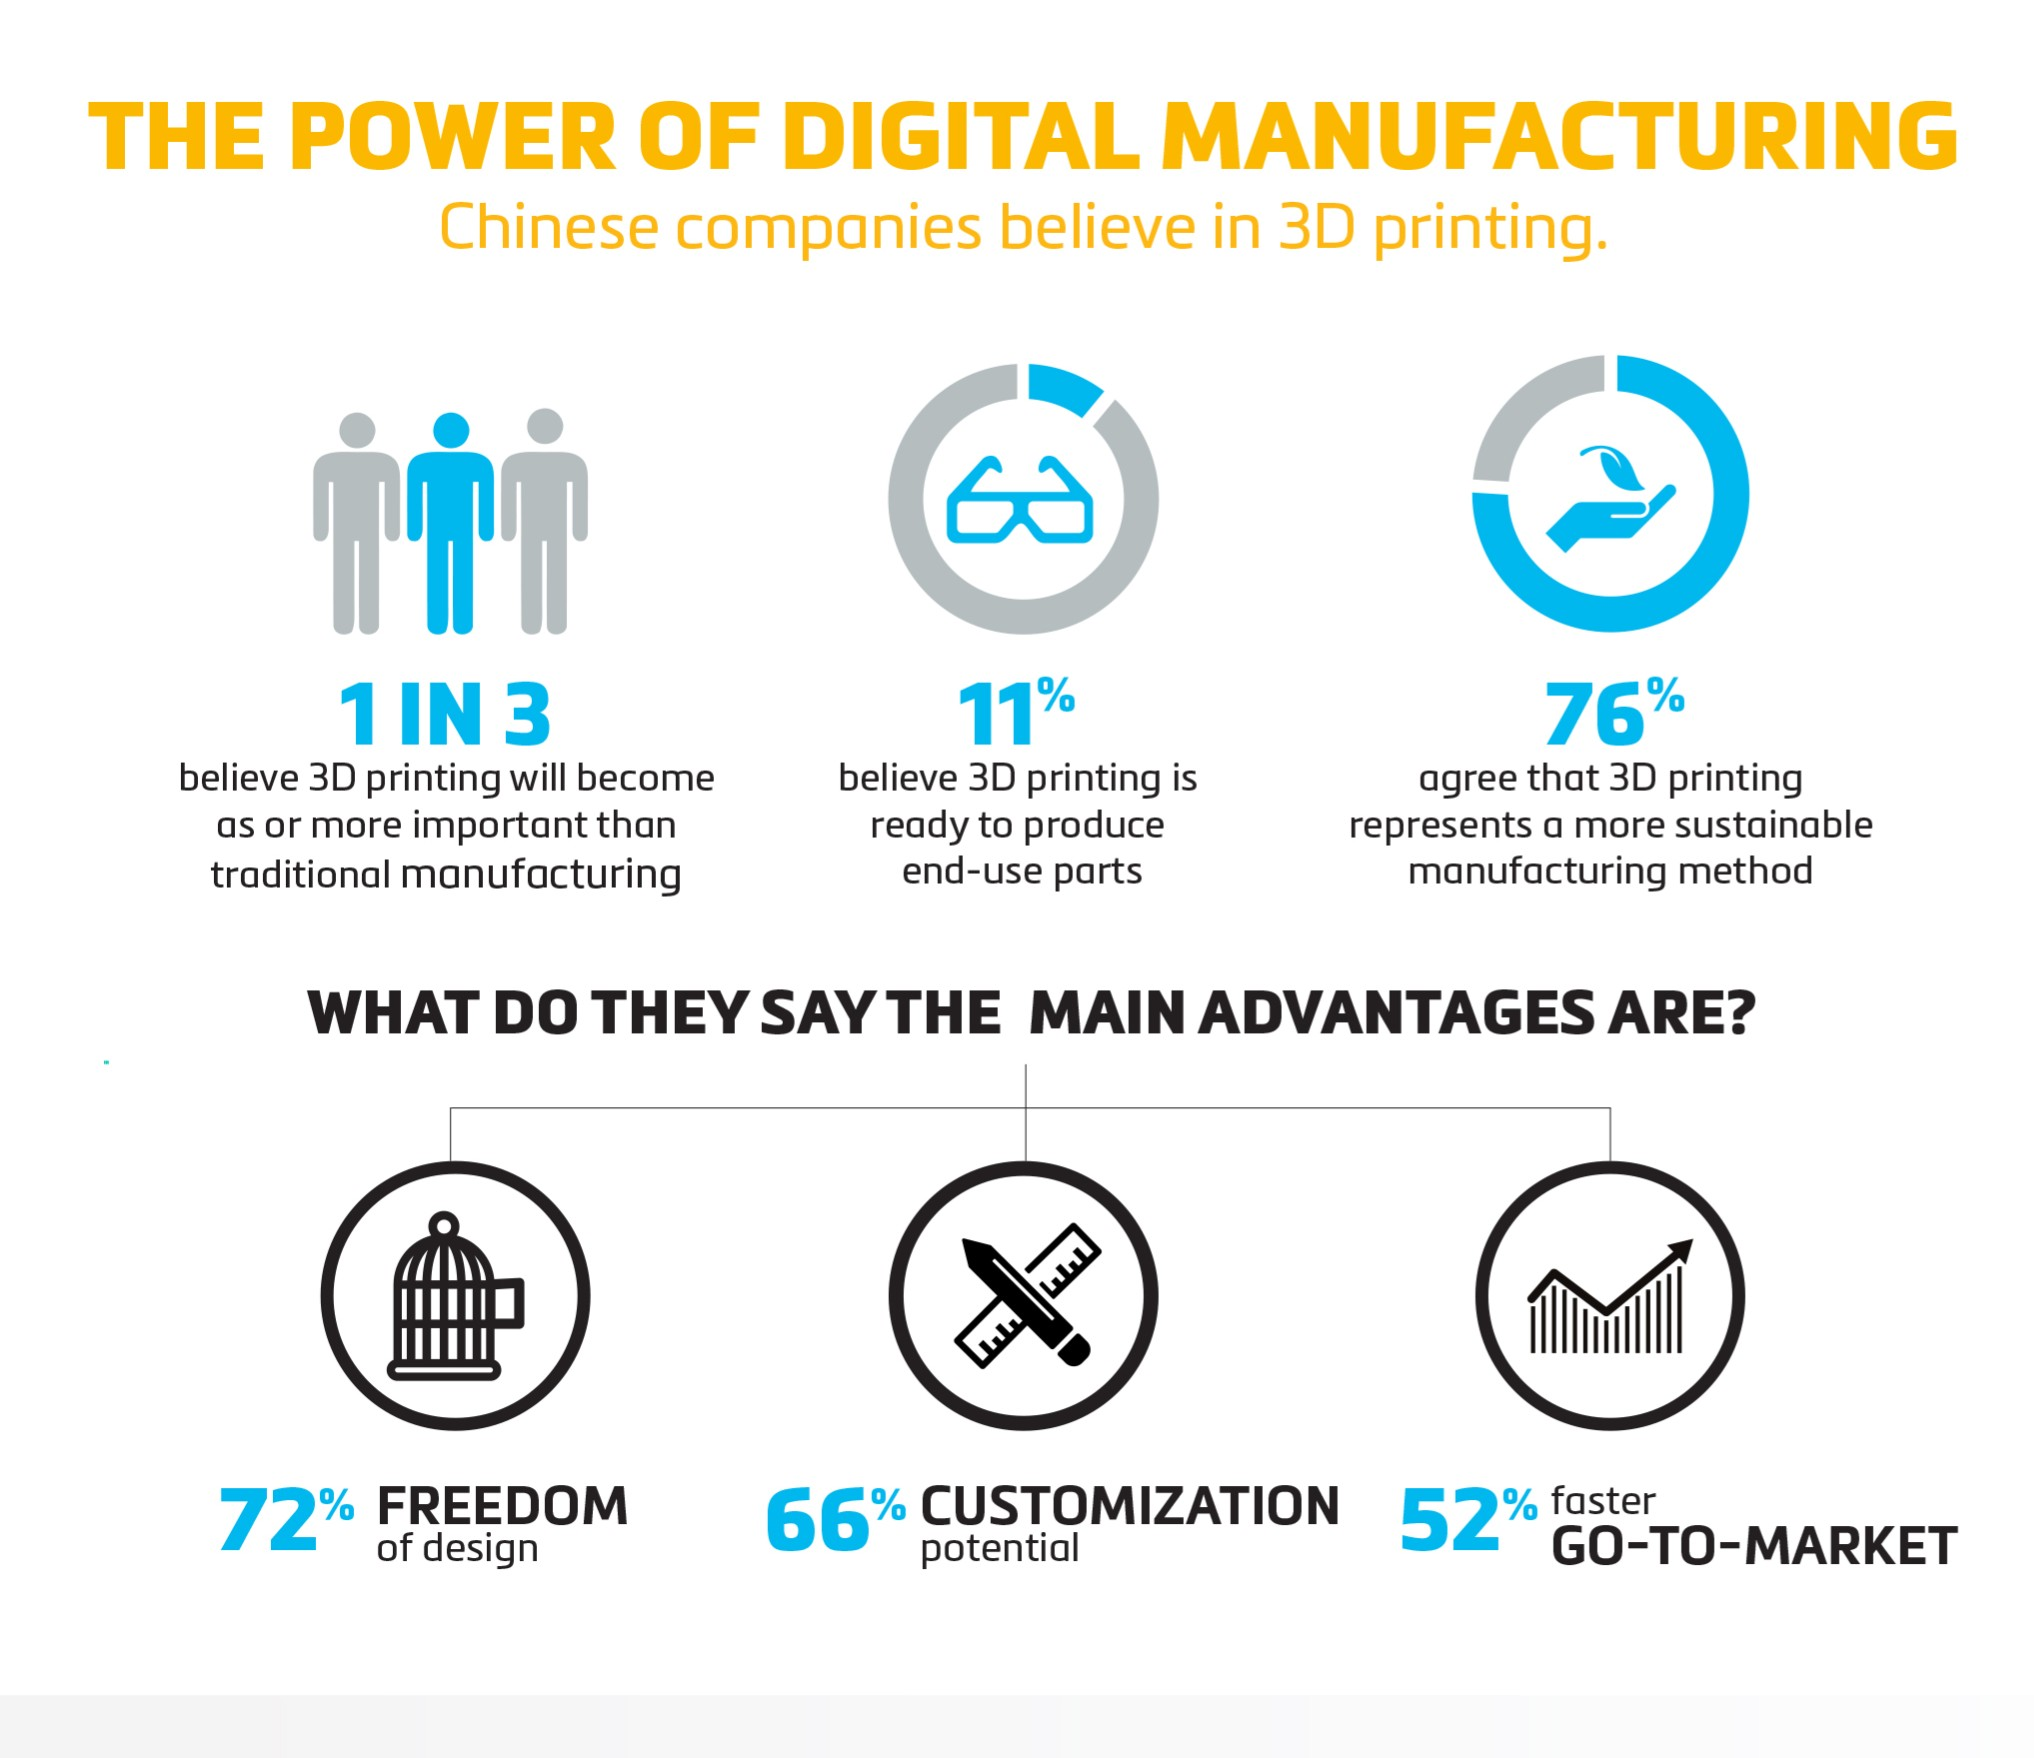 Materialise China Survey infographic detailing advantages of 3D printing. Image via Materialise.